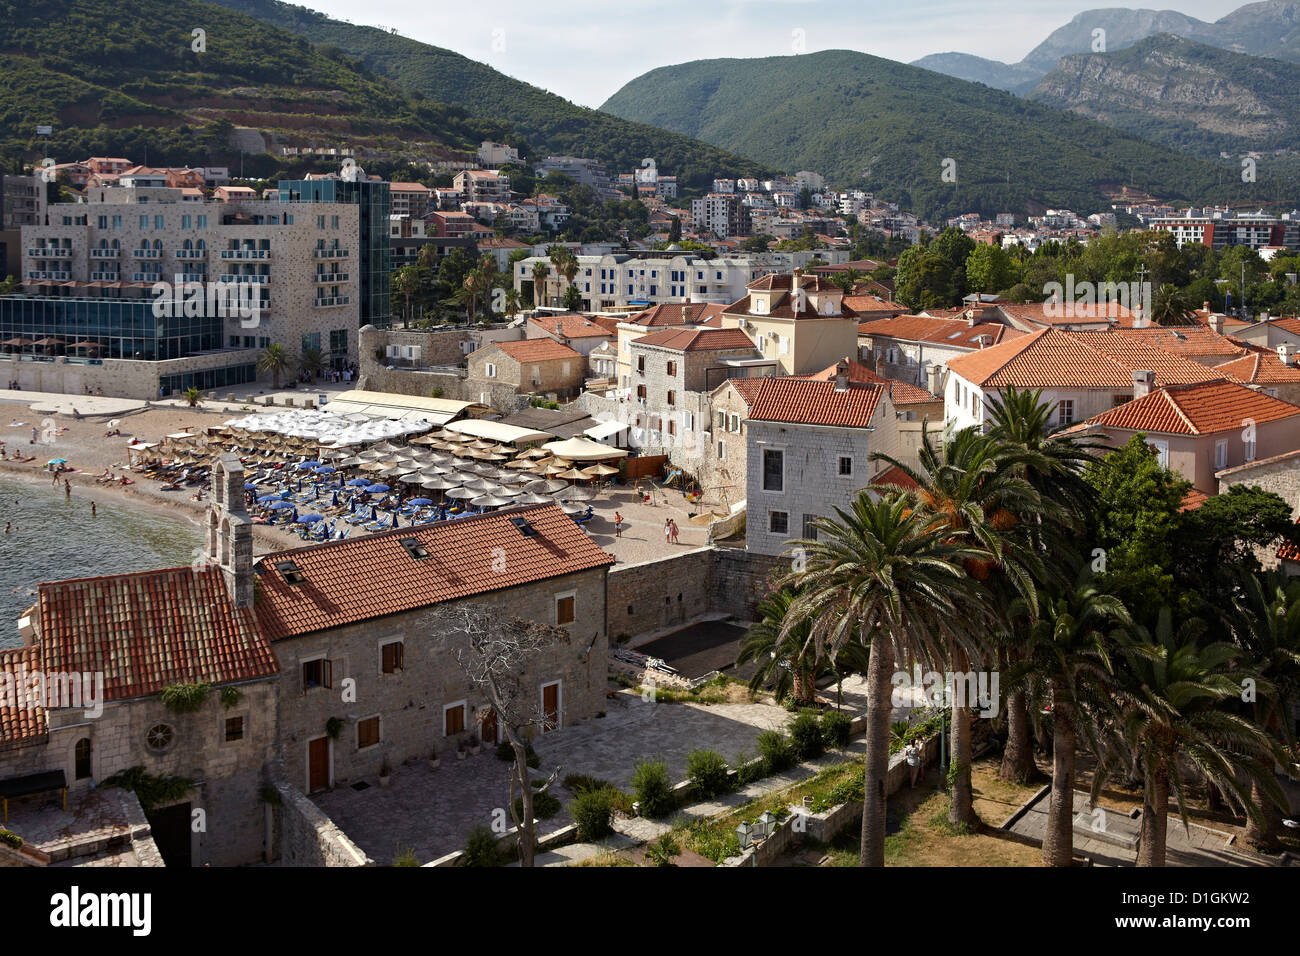 The old walled town of Budva, Montenegro, Europe - Stock Image